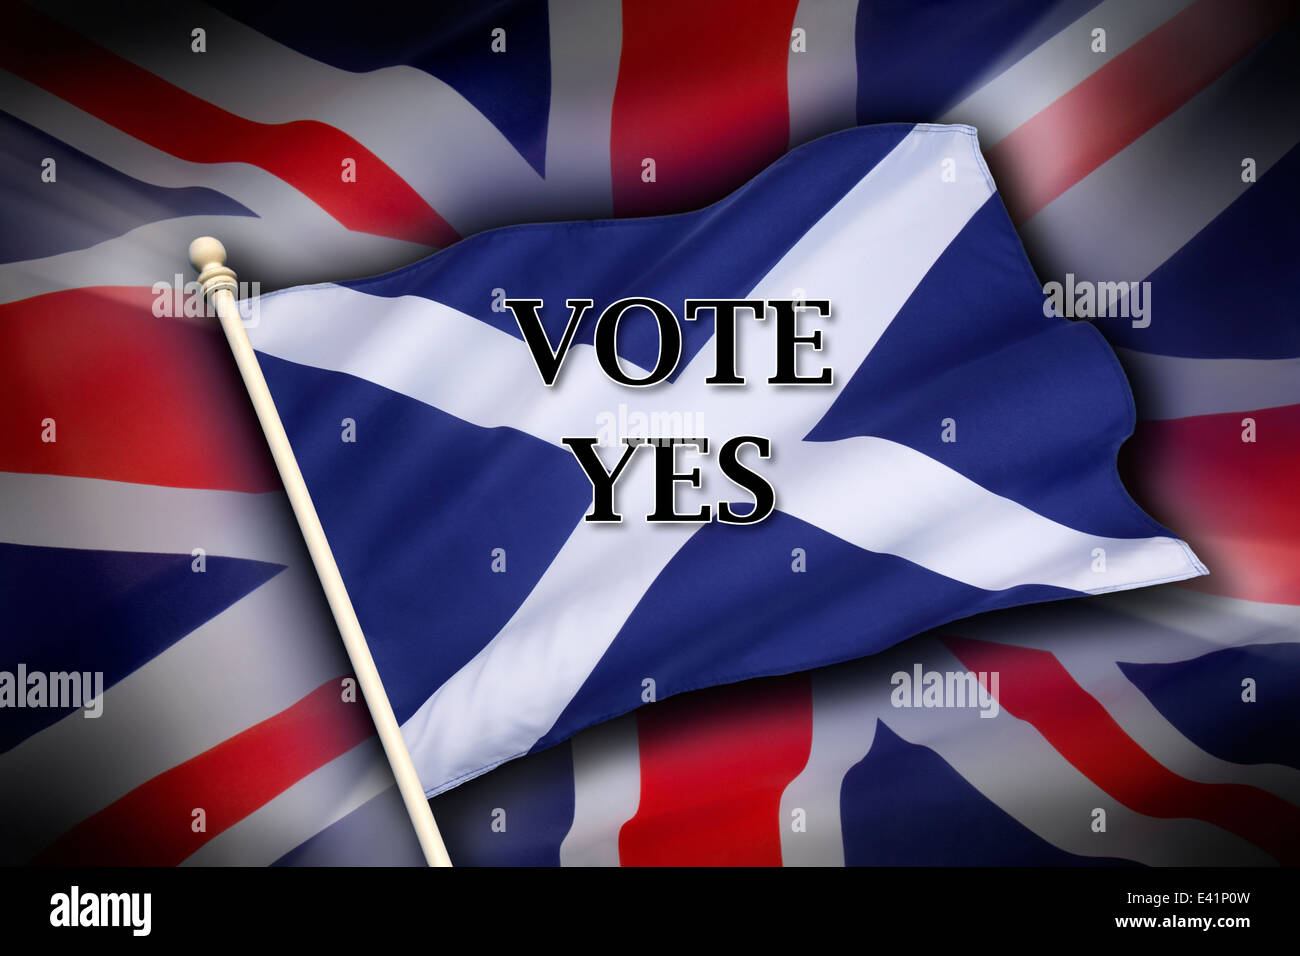 The flag of the United Kingdom (The Union Flag) and the flag of Scotland - Scottish Independence - Vote Yes - Stock Image